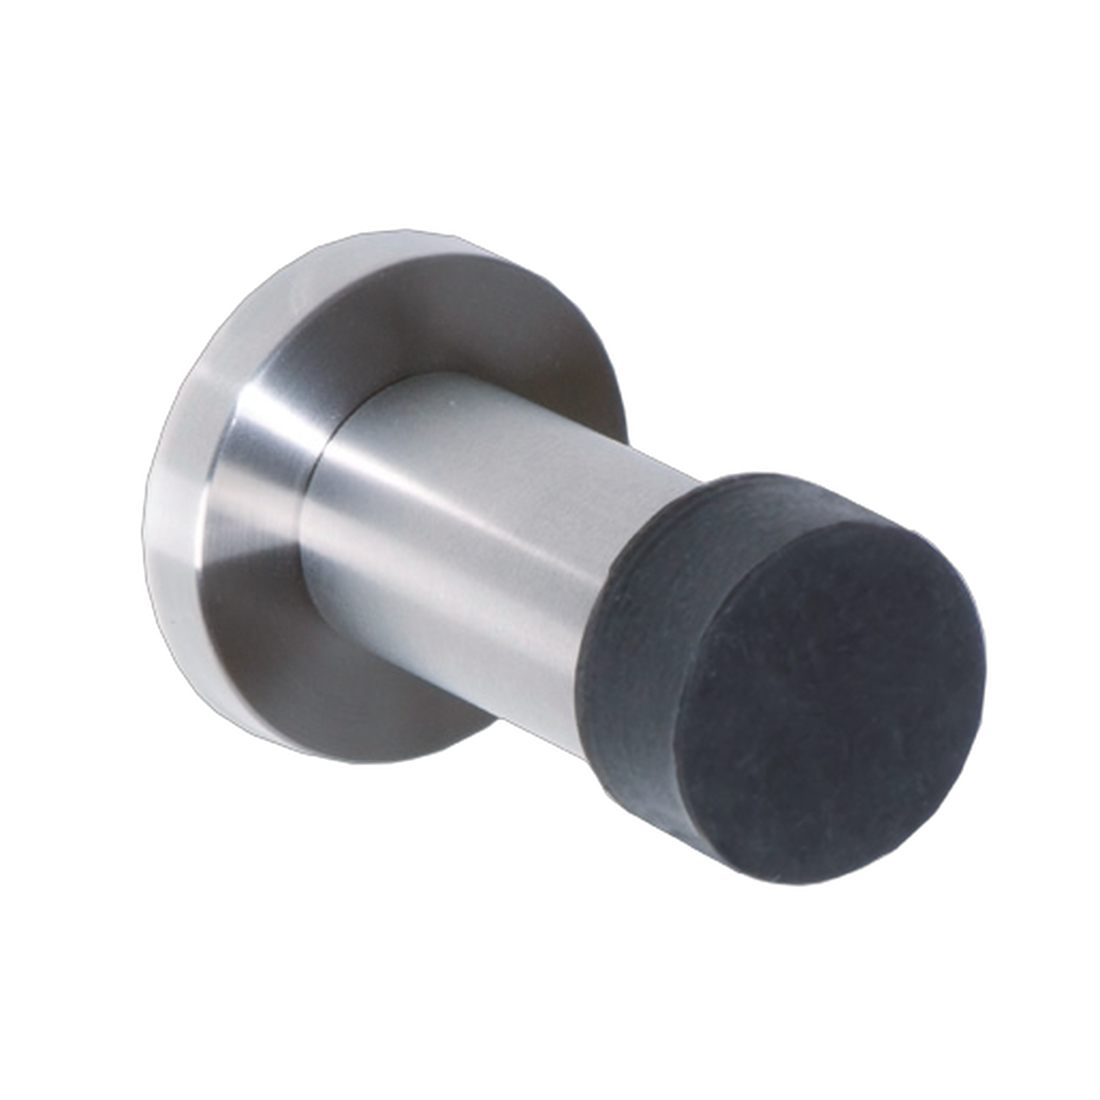 DOOR STOPPER, FOR WALL MOUNTING, ø 22/30MM, MOUNTING PLATE